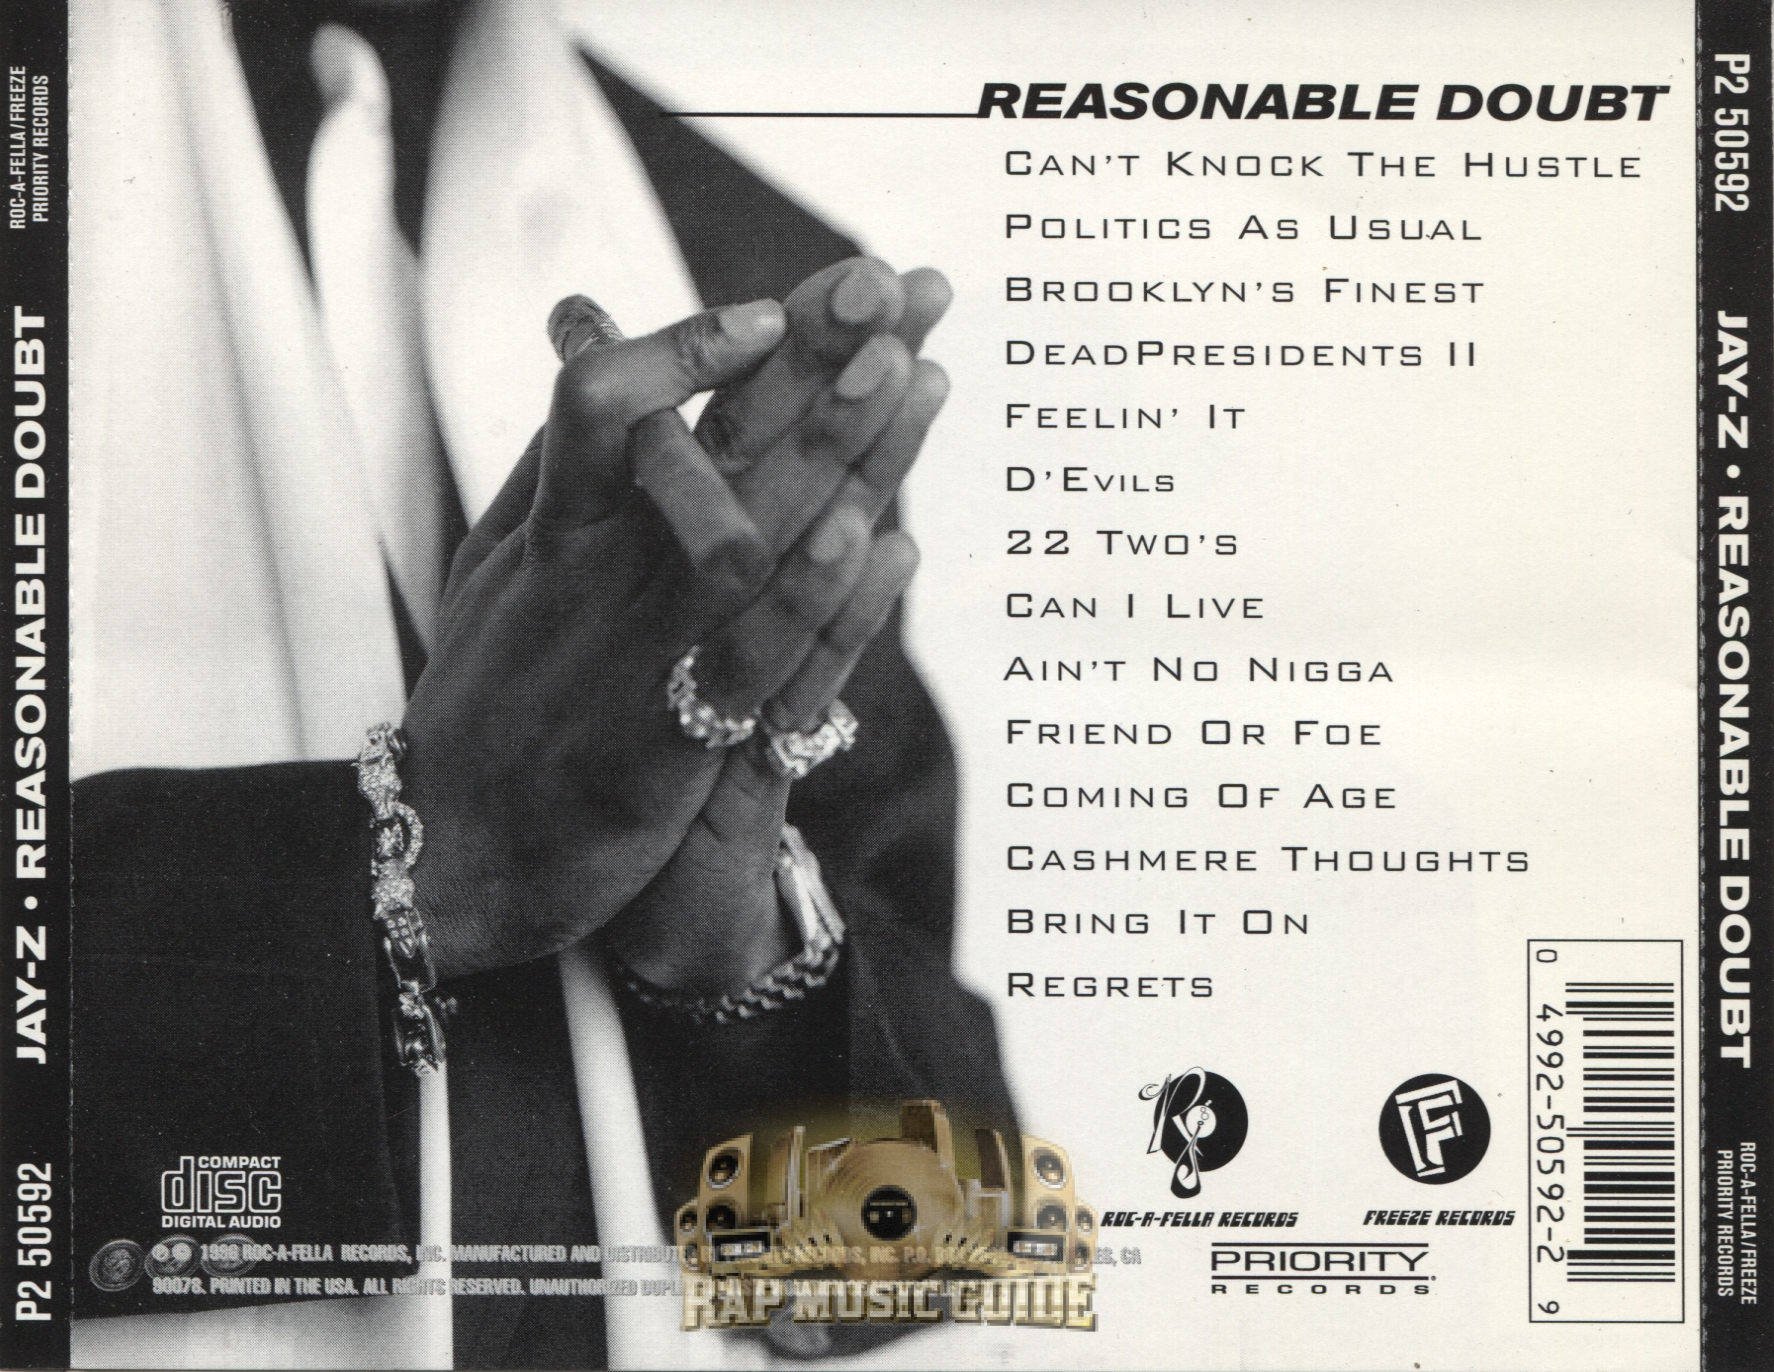 a review of the best album of jay z entitled reasonable doubt How jay-z must wish it were 1996 now, the year he released reasonable doubt without the weight of the world on his shoulders no major rapper can release an album in such a vacuum in 2017, and in.